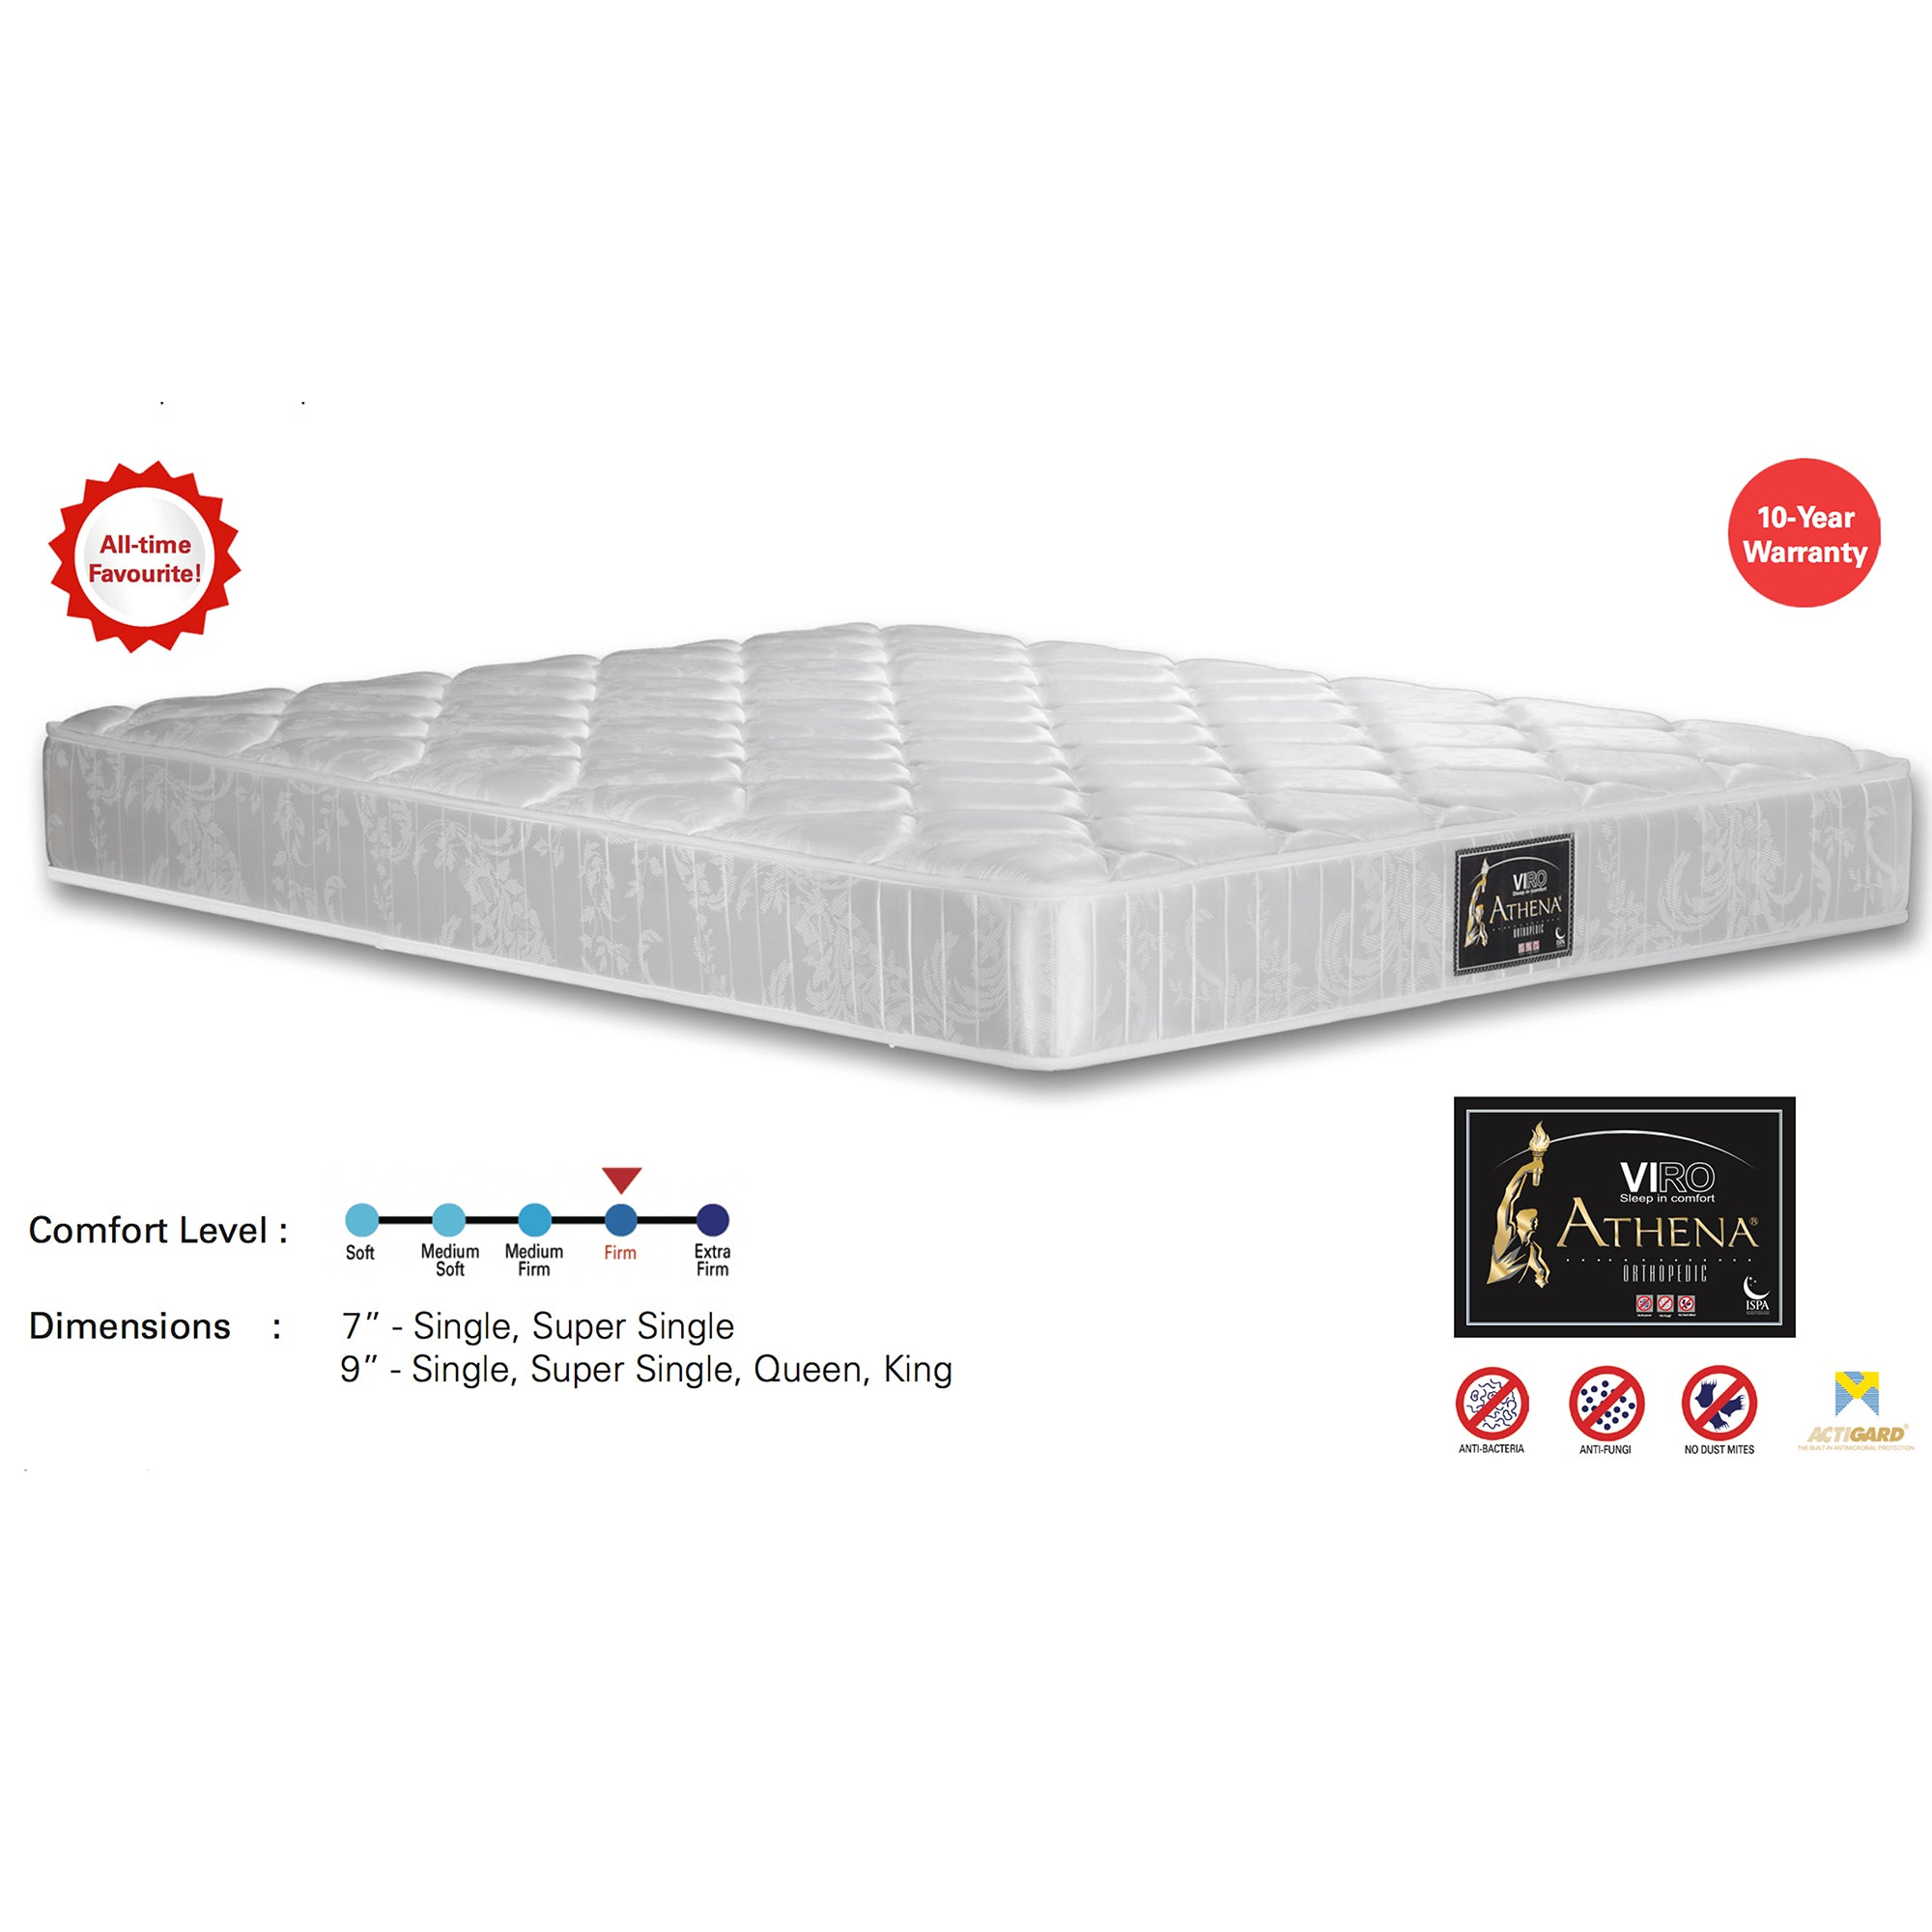 Viro Athena Spring Mattress (5 Feet Queen Size x 9